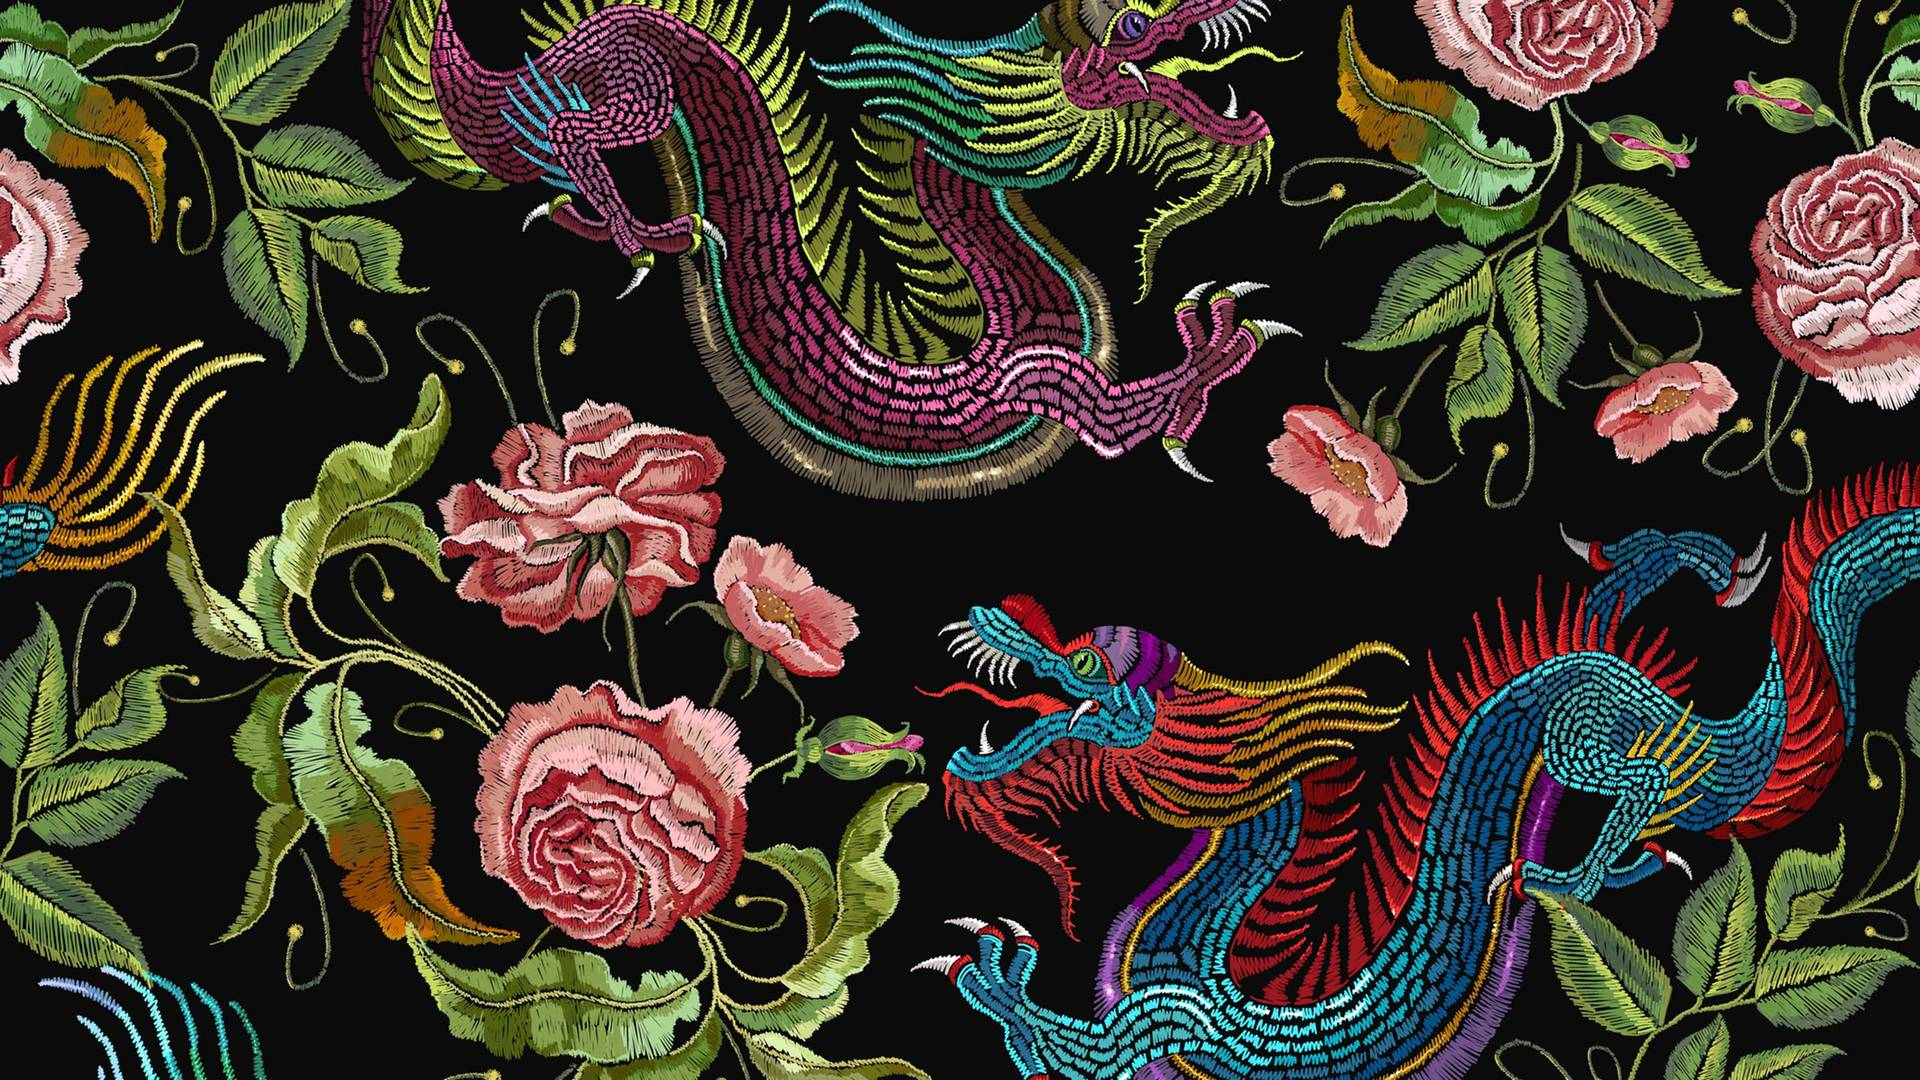 embroidery shoooing guanghzou